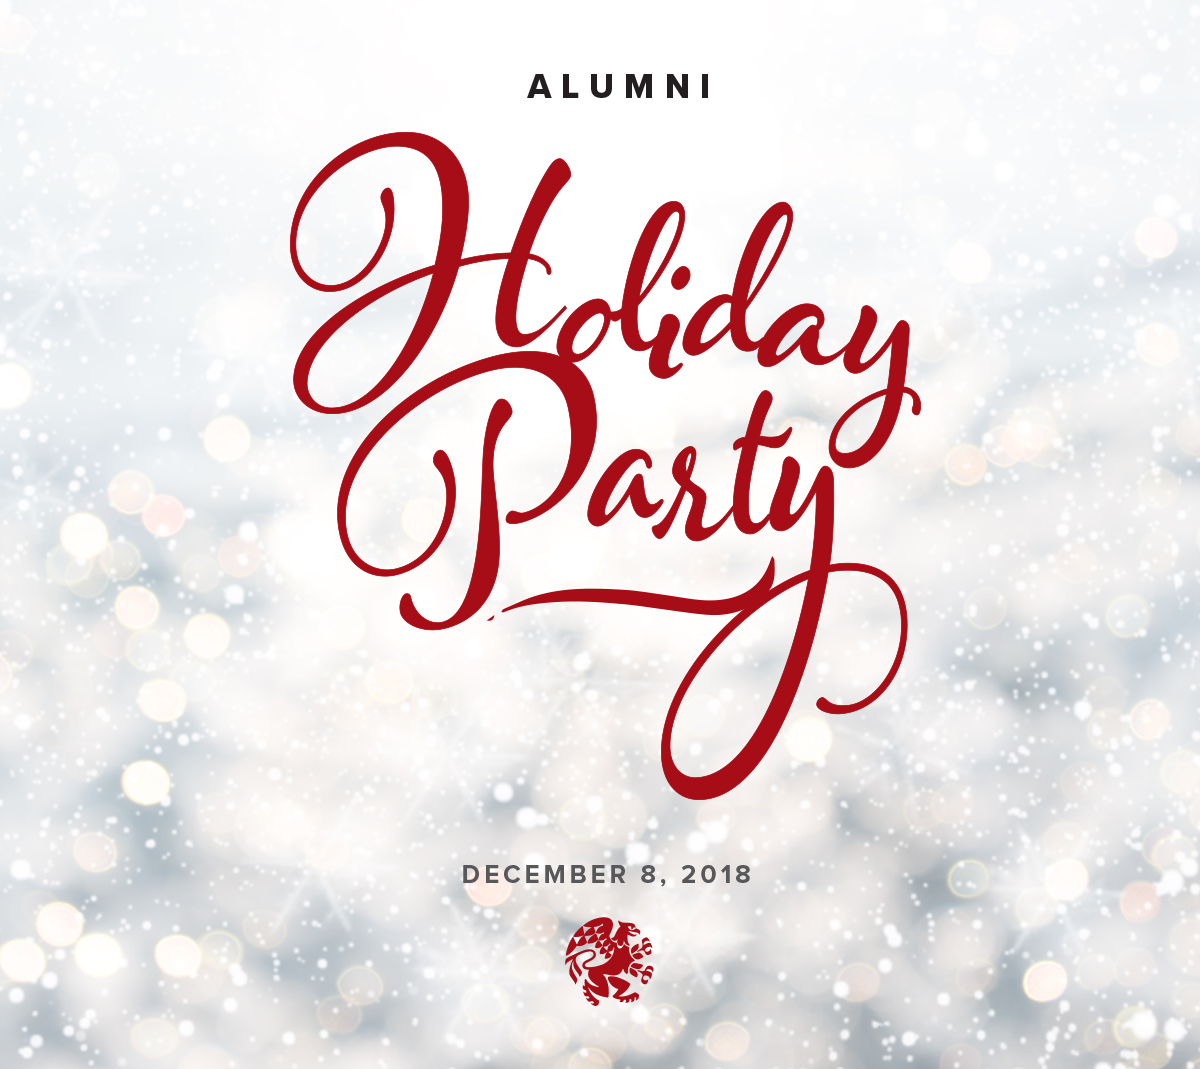 alumni-holiday-party-2018.png